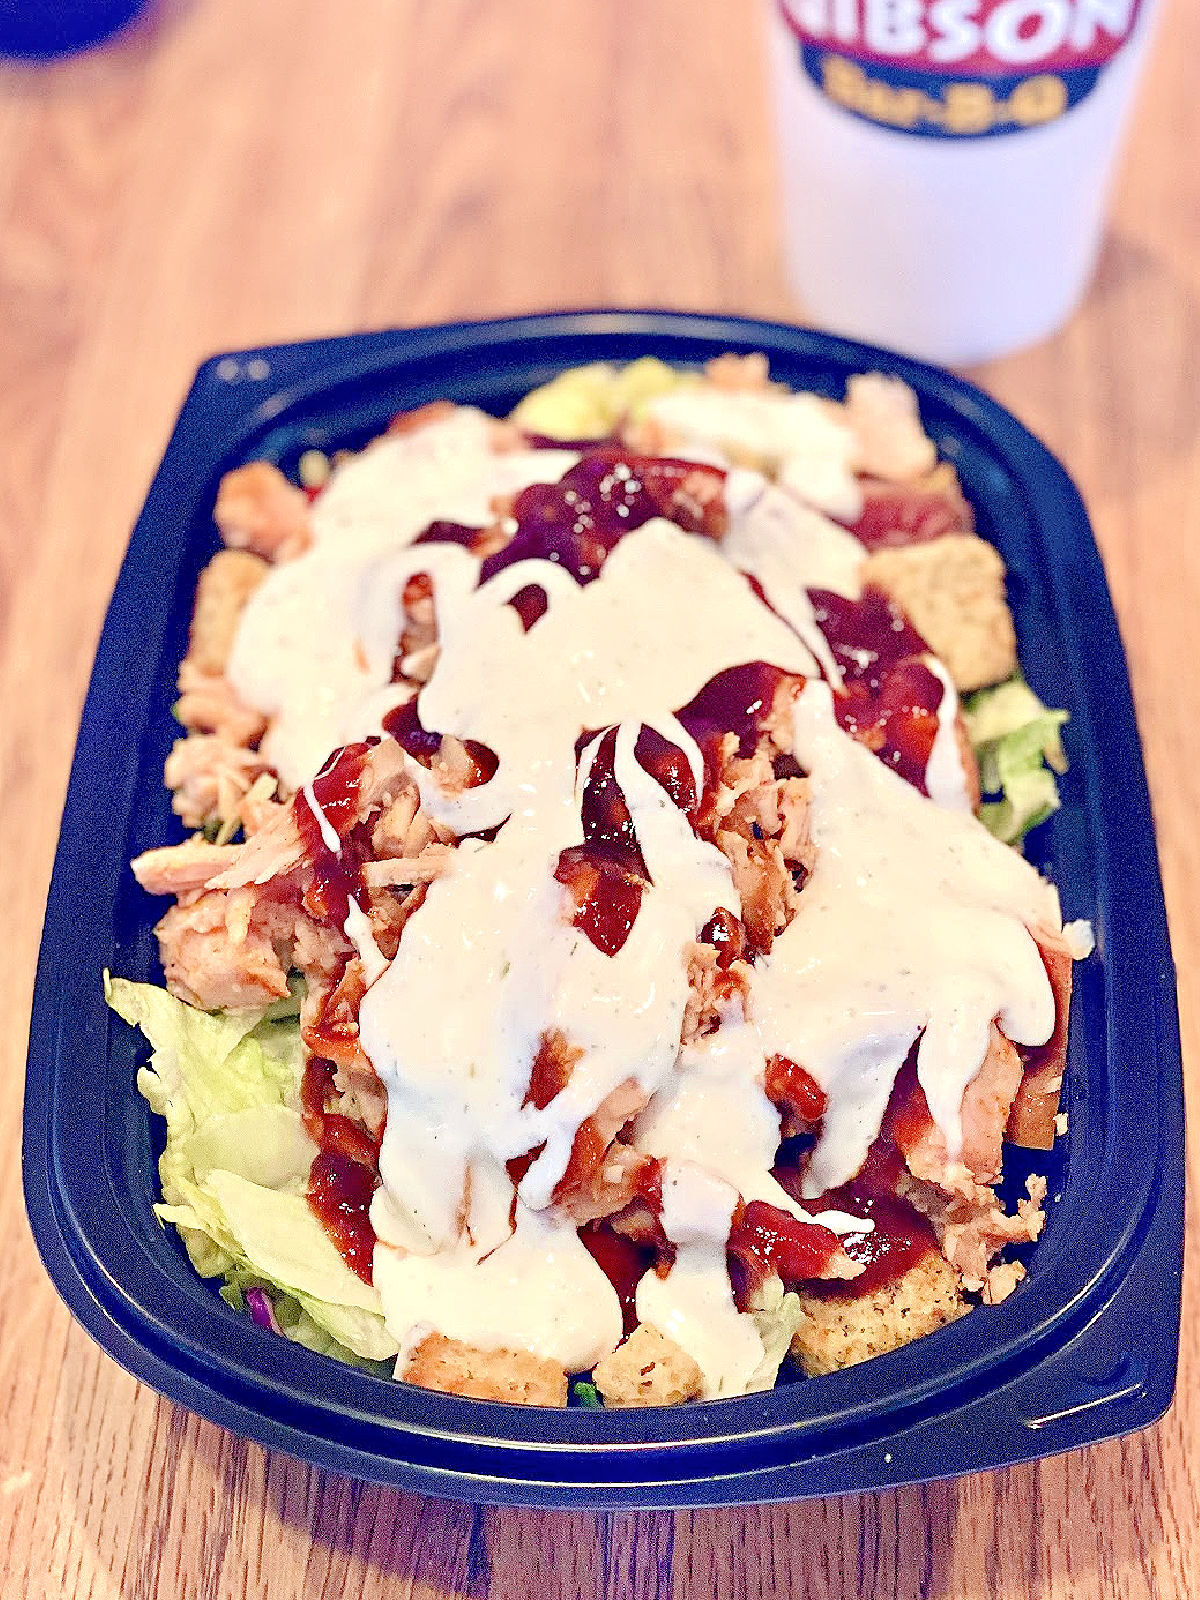 BBQ chicken salad with Alabama White sauce on top.